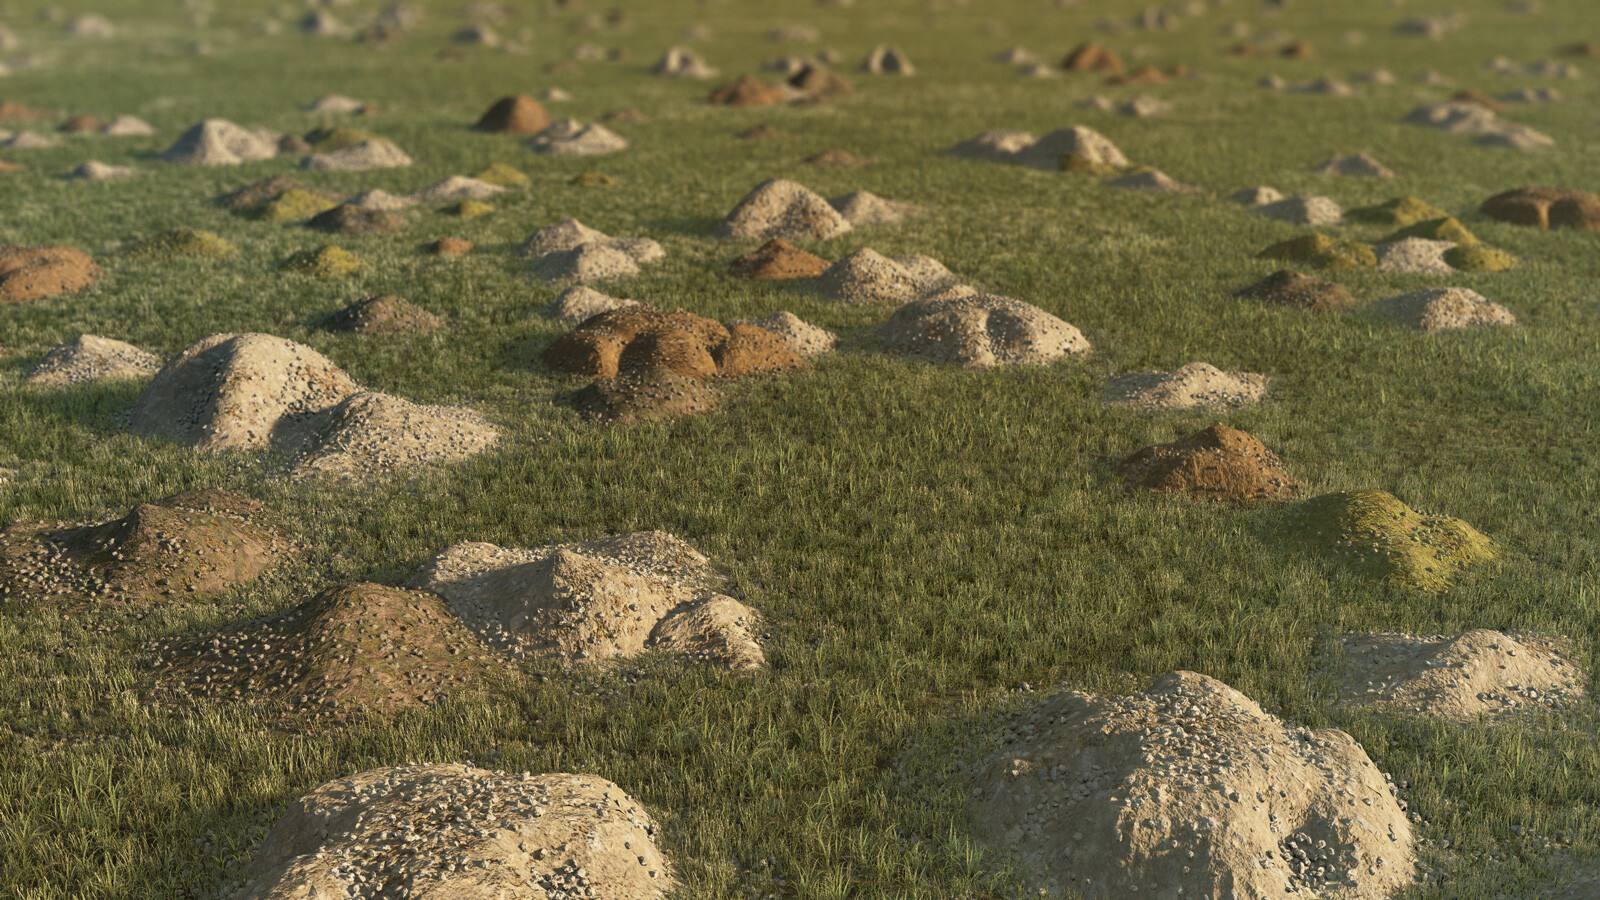 Patreon 3D Model Archive: DIRT!